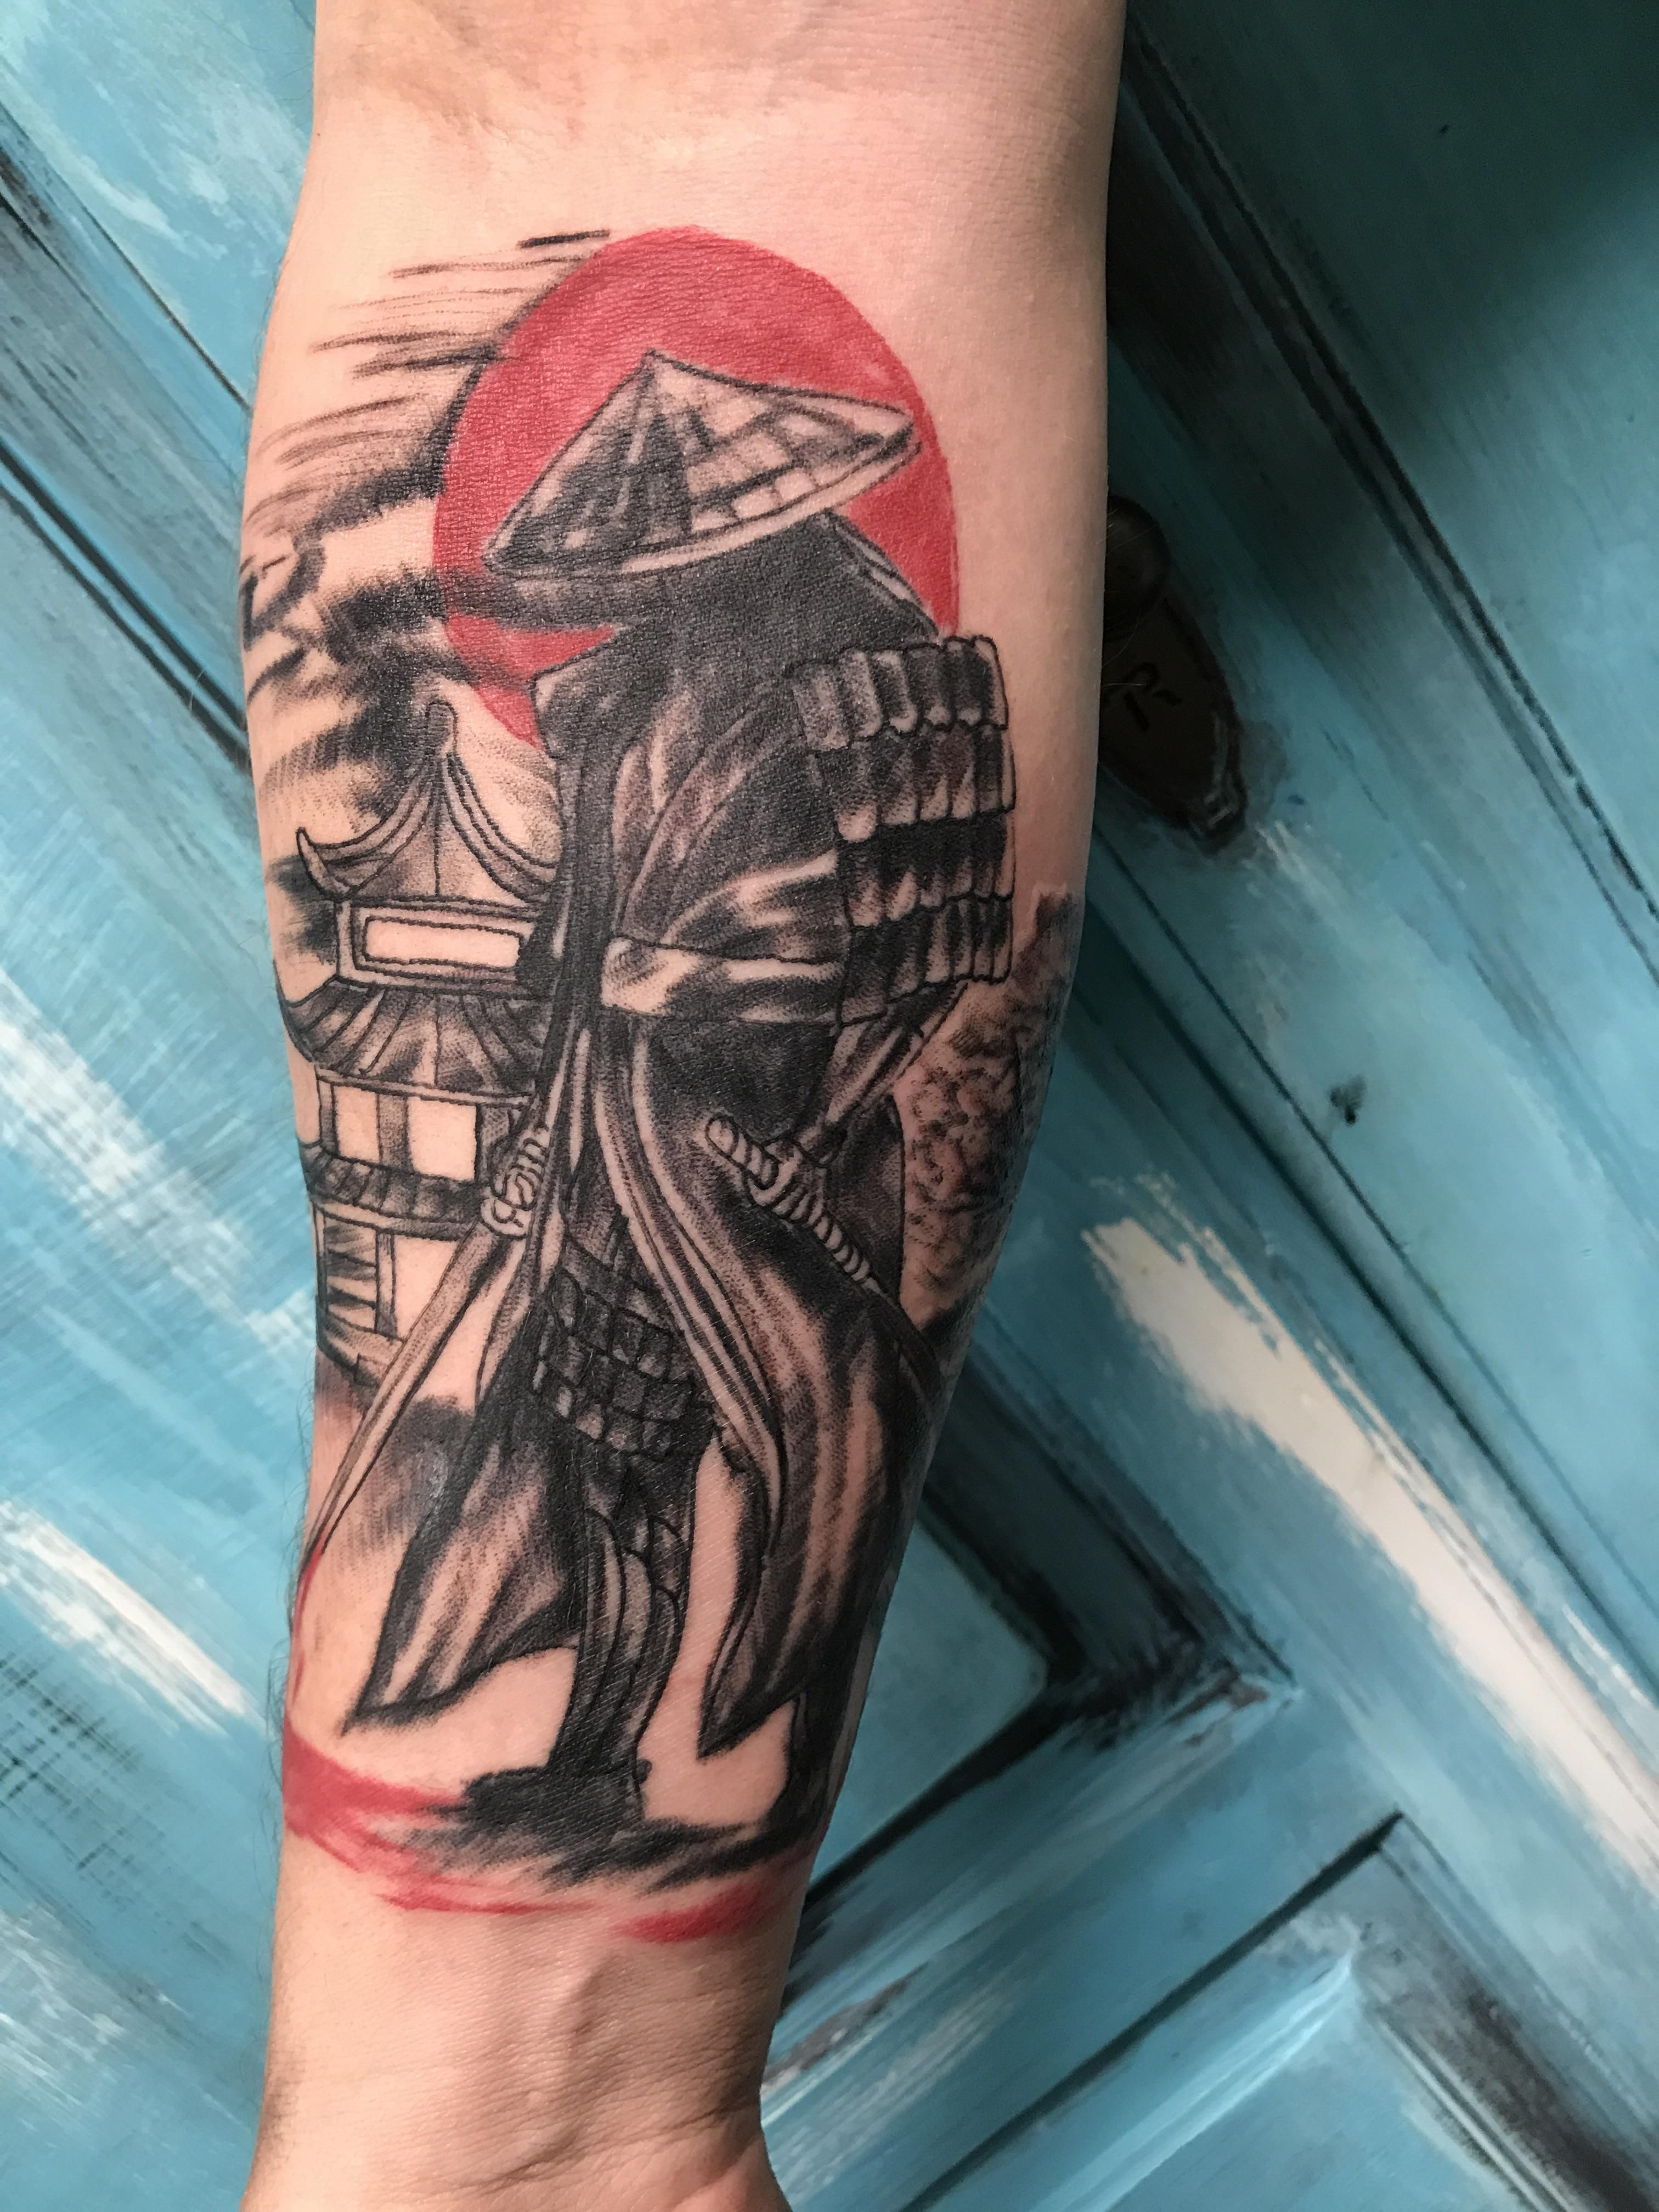 Samurai by worm at brick house tattoos in jacksonville ar for Japanese tattoo